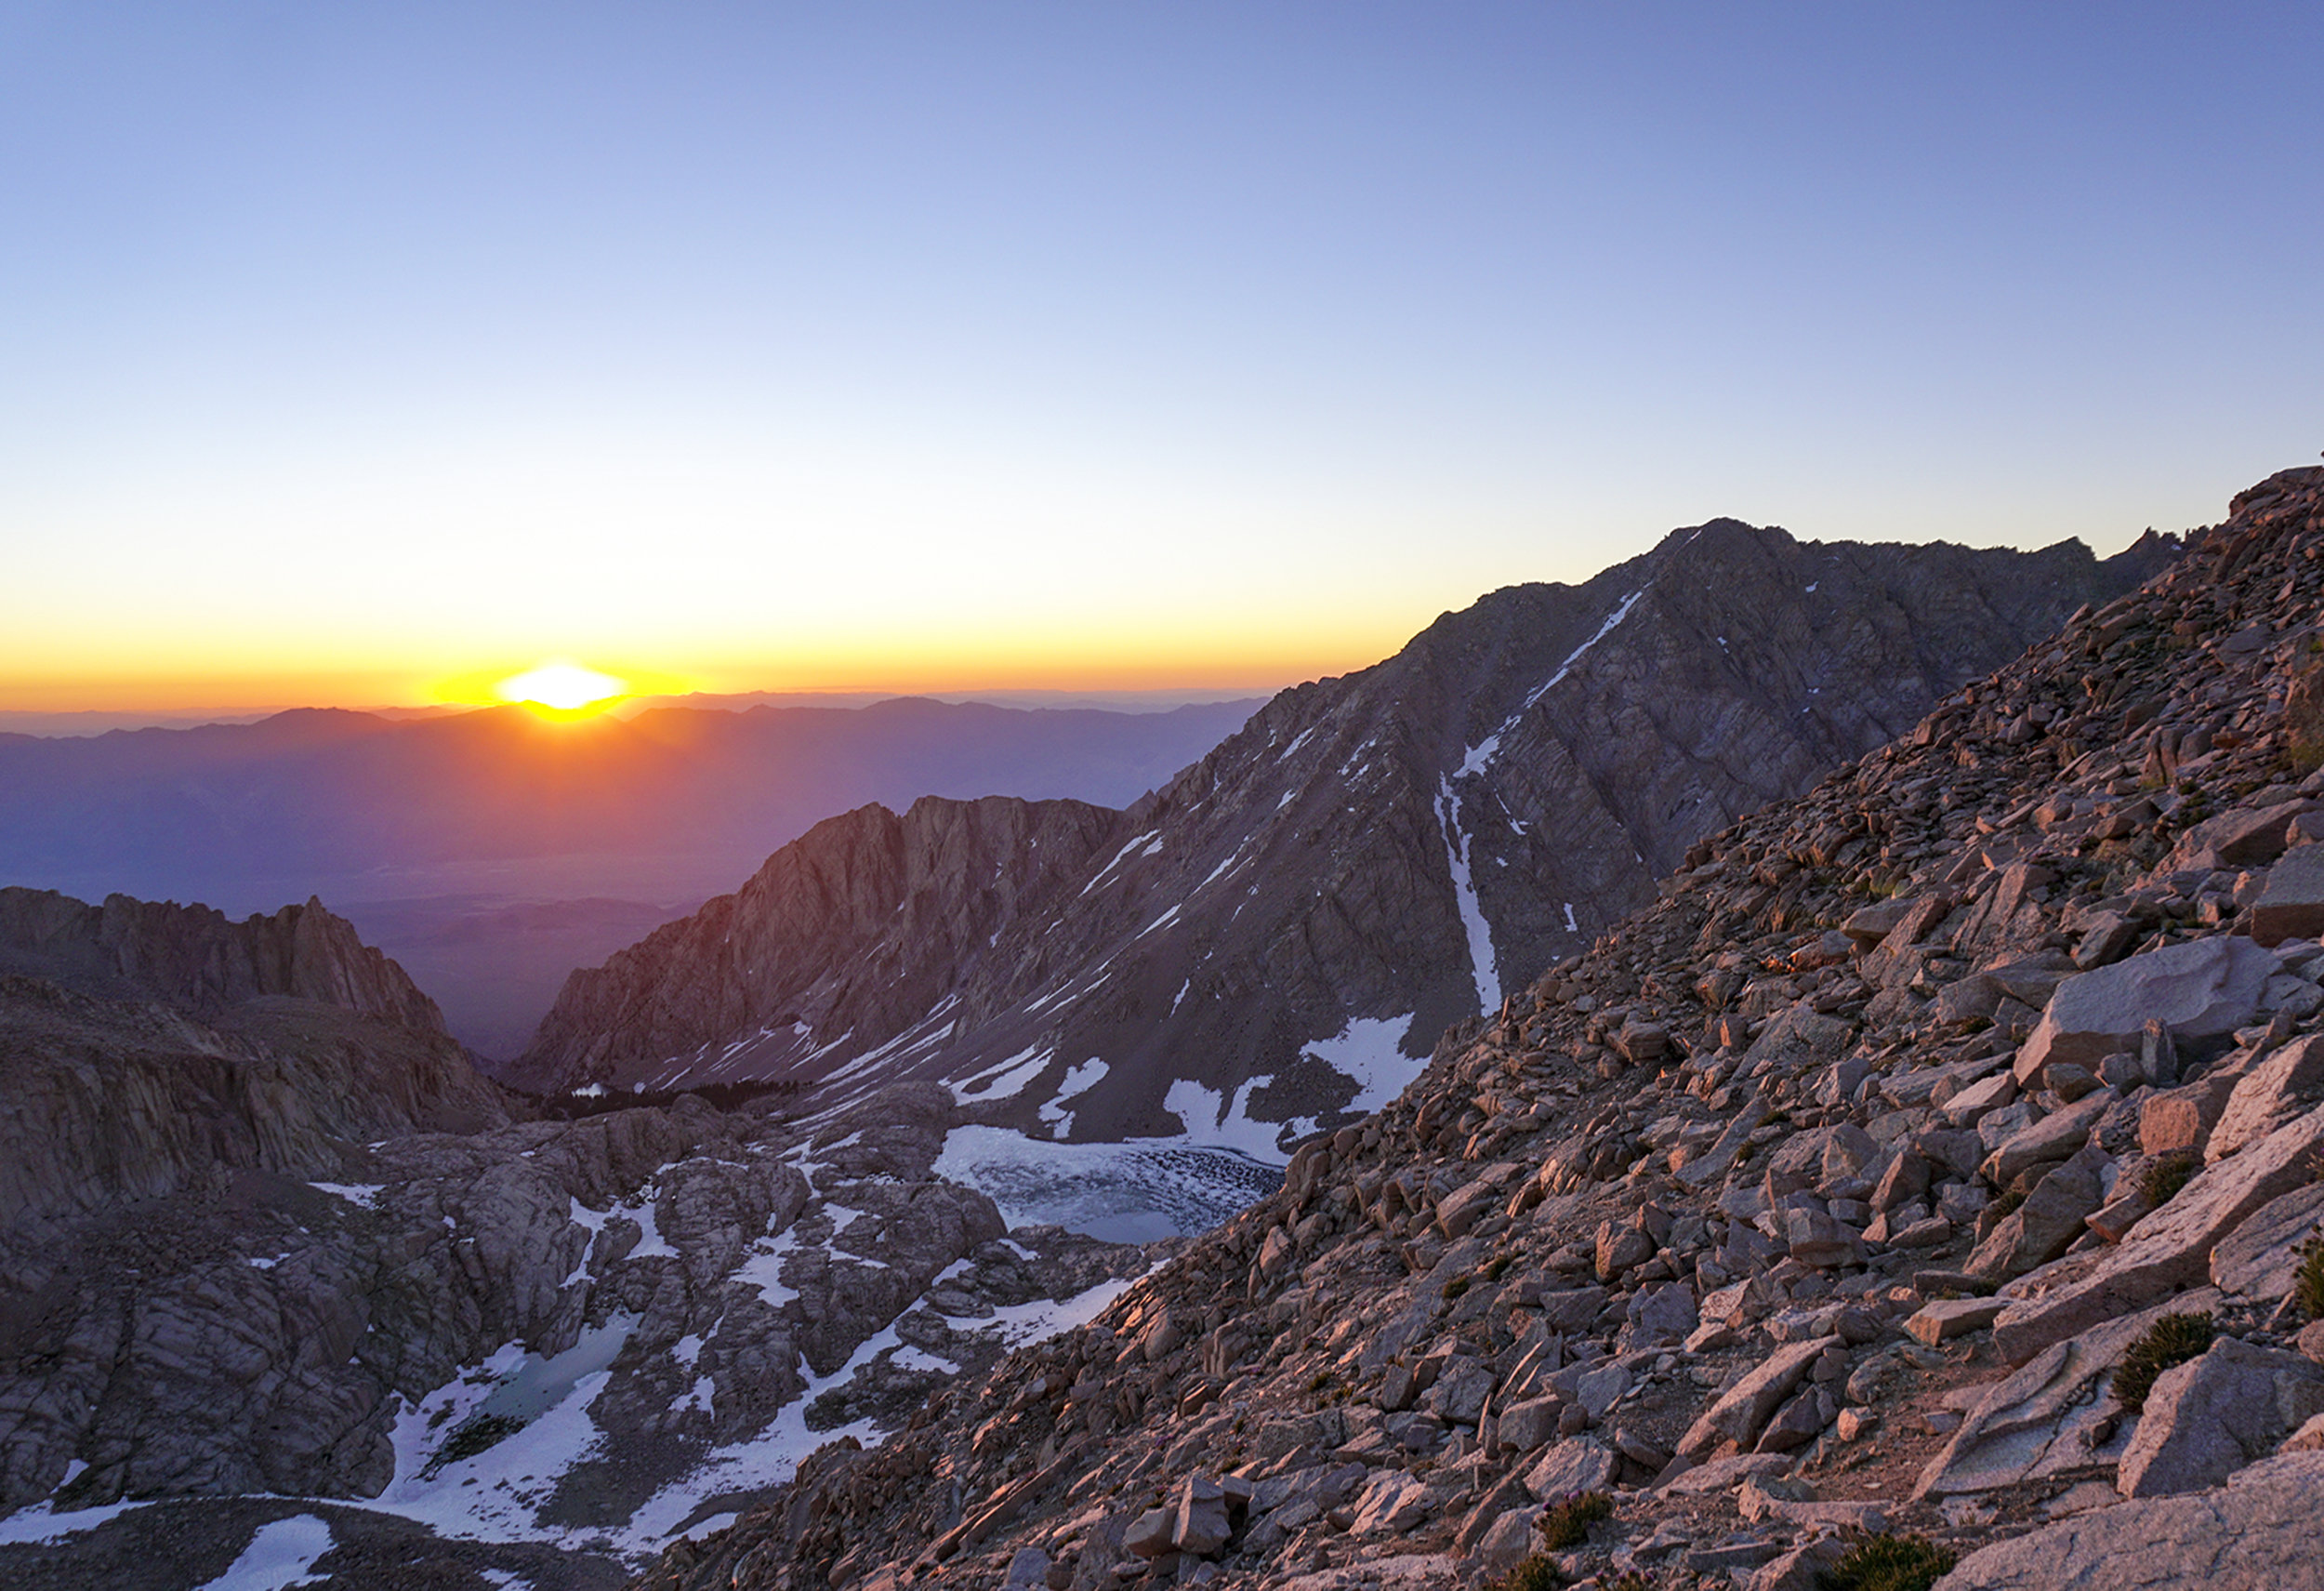 Sunrise from the 99 switchbacks